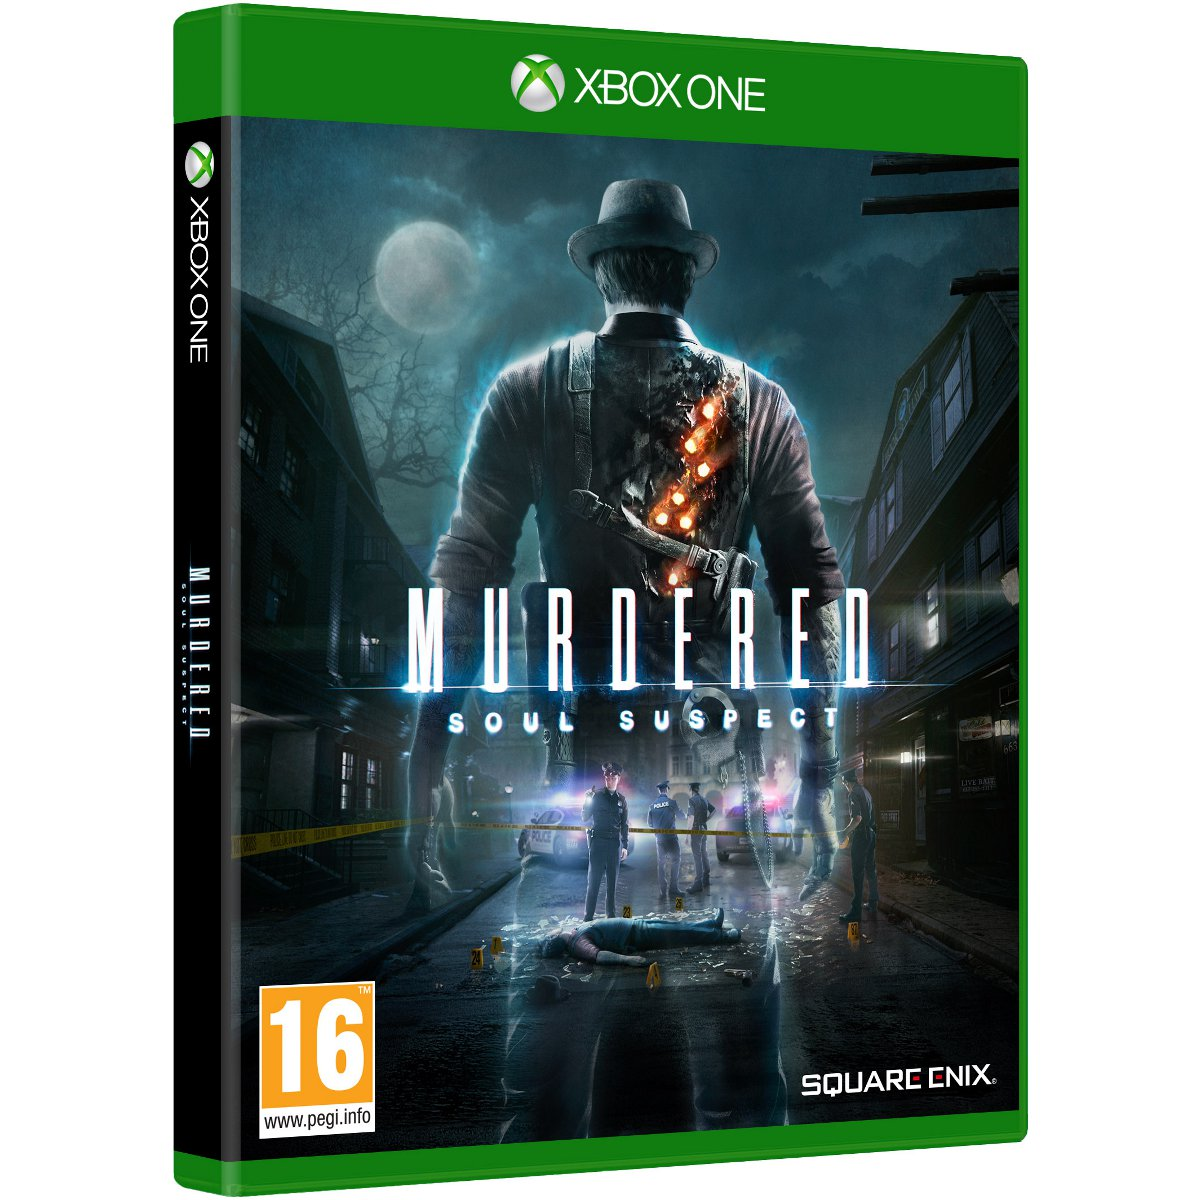 murdered soul suspect xbox one jeux xbox one square enix sur. Black Bedroom Furniture Sets. Home Design Ideas